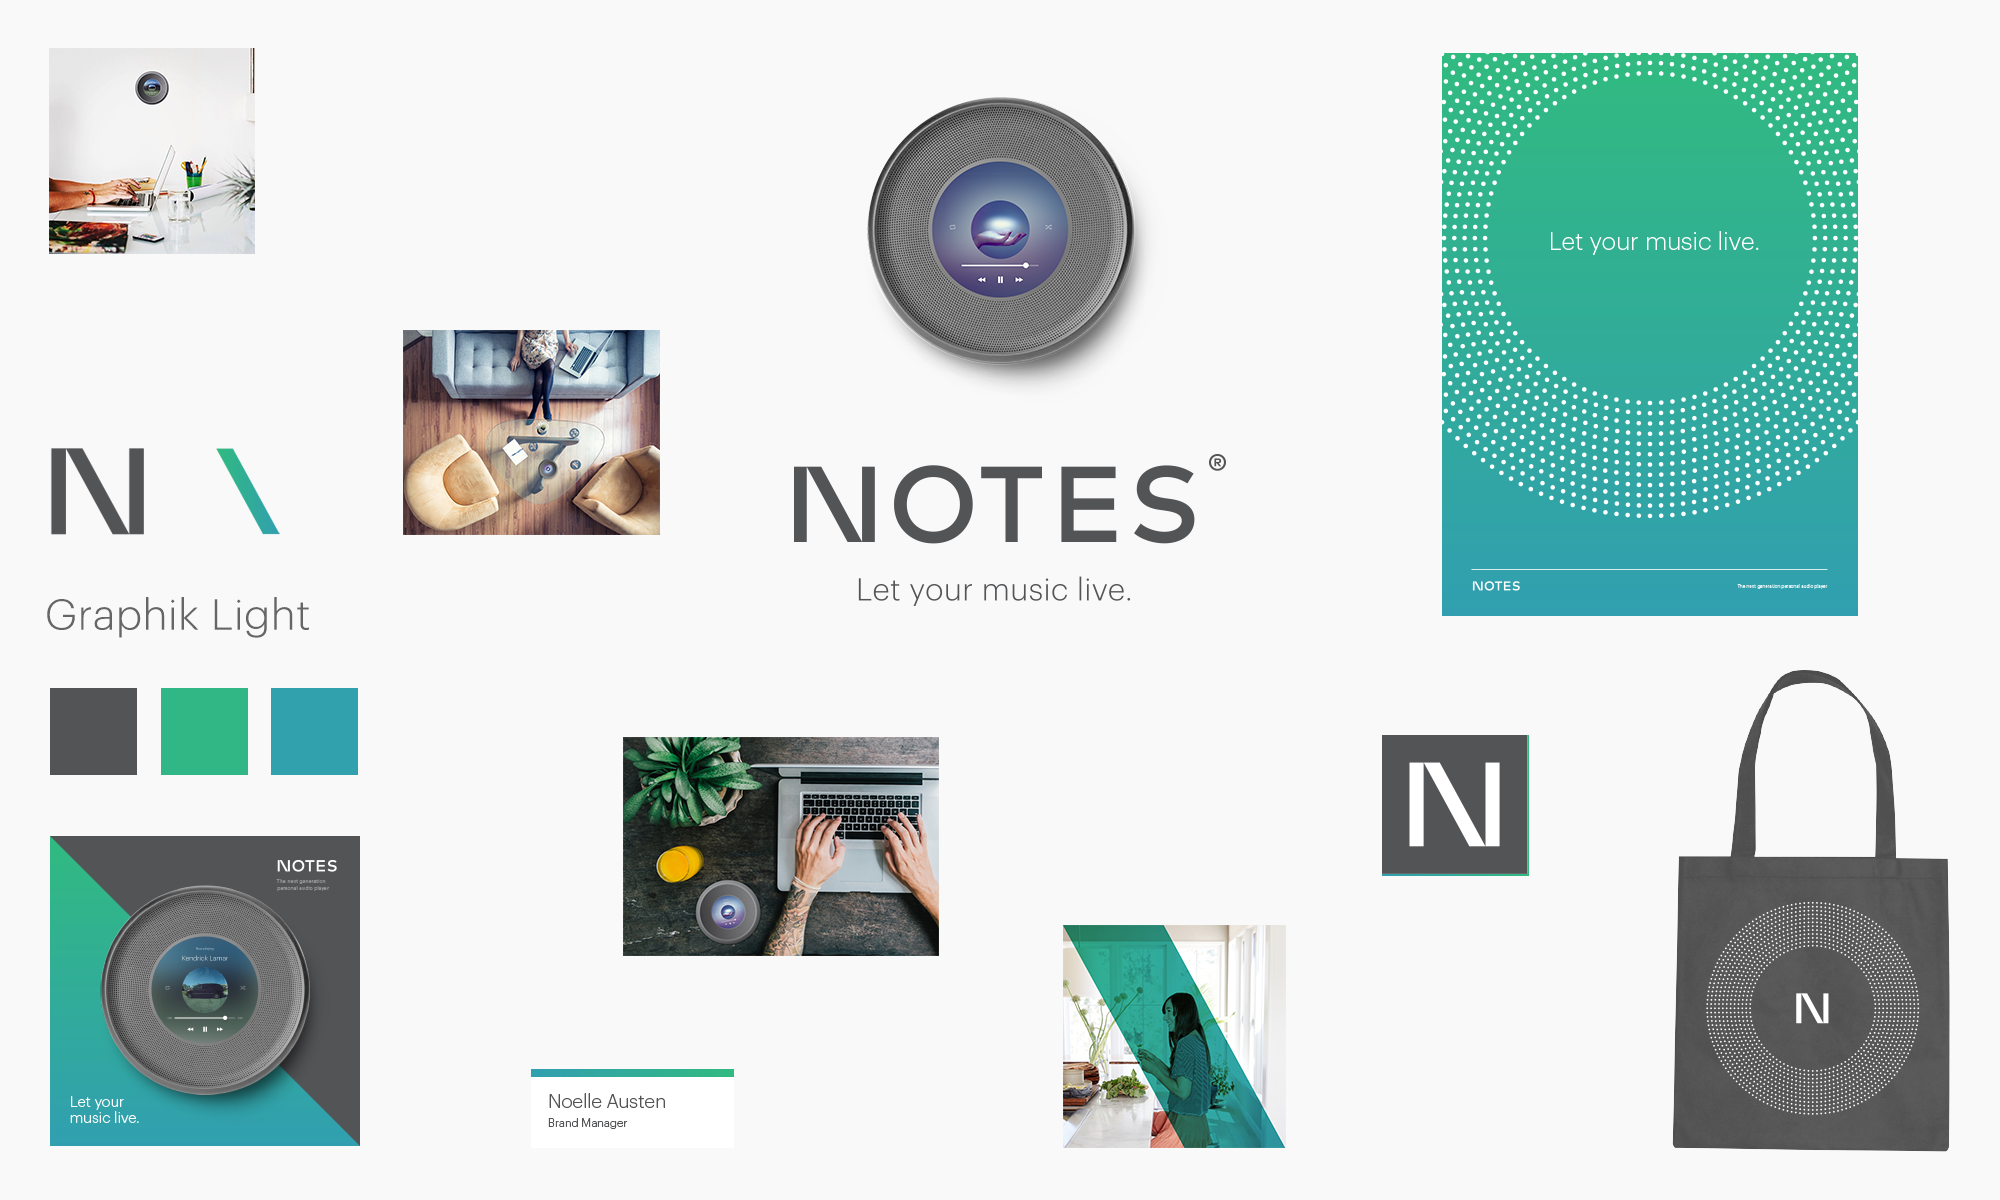 Notes — Let your music live.